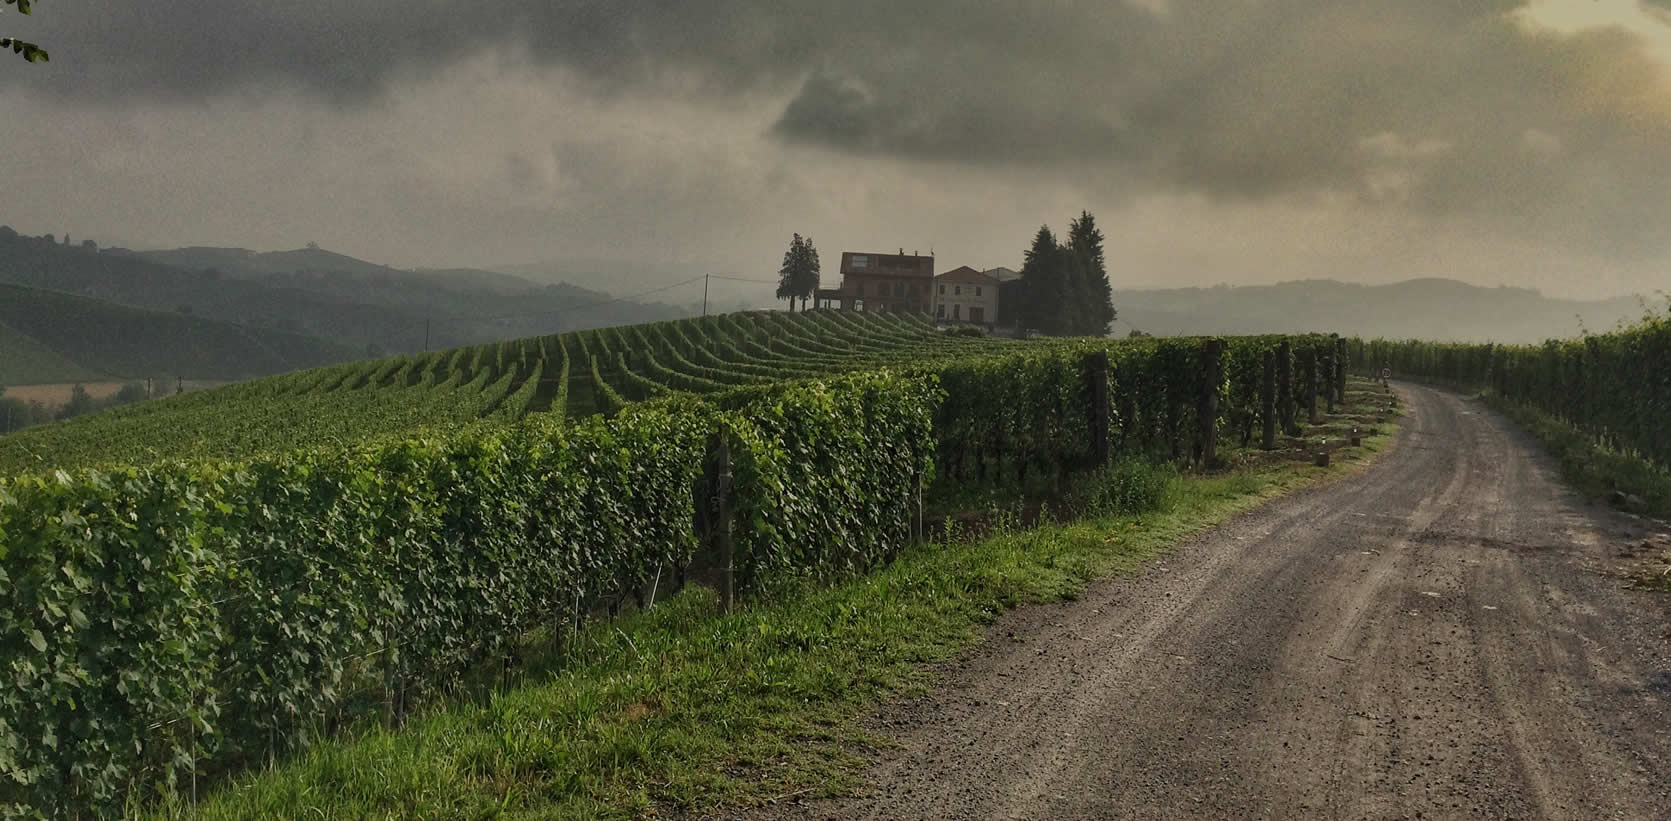 Winery in Barolo